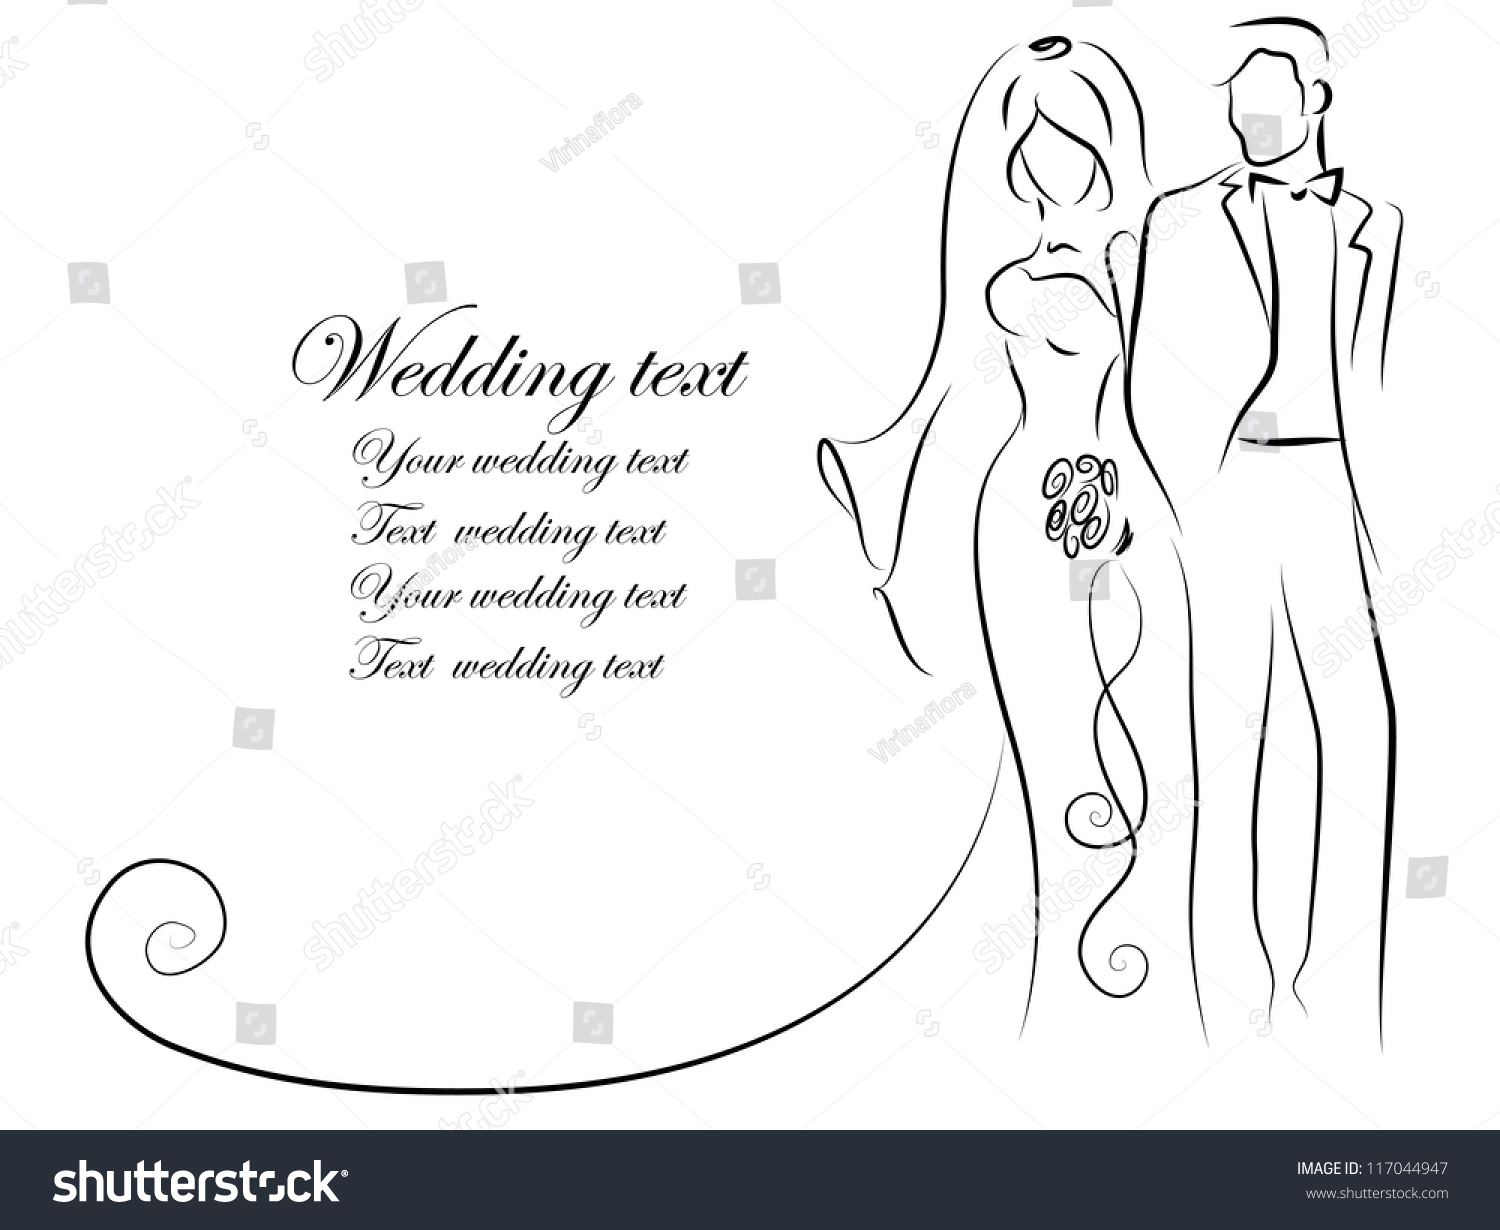 Silhouette Bride Groom Background Wedding Invitation Stock Photo ...